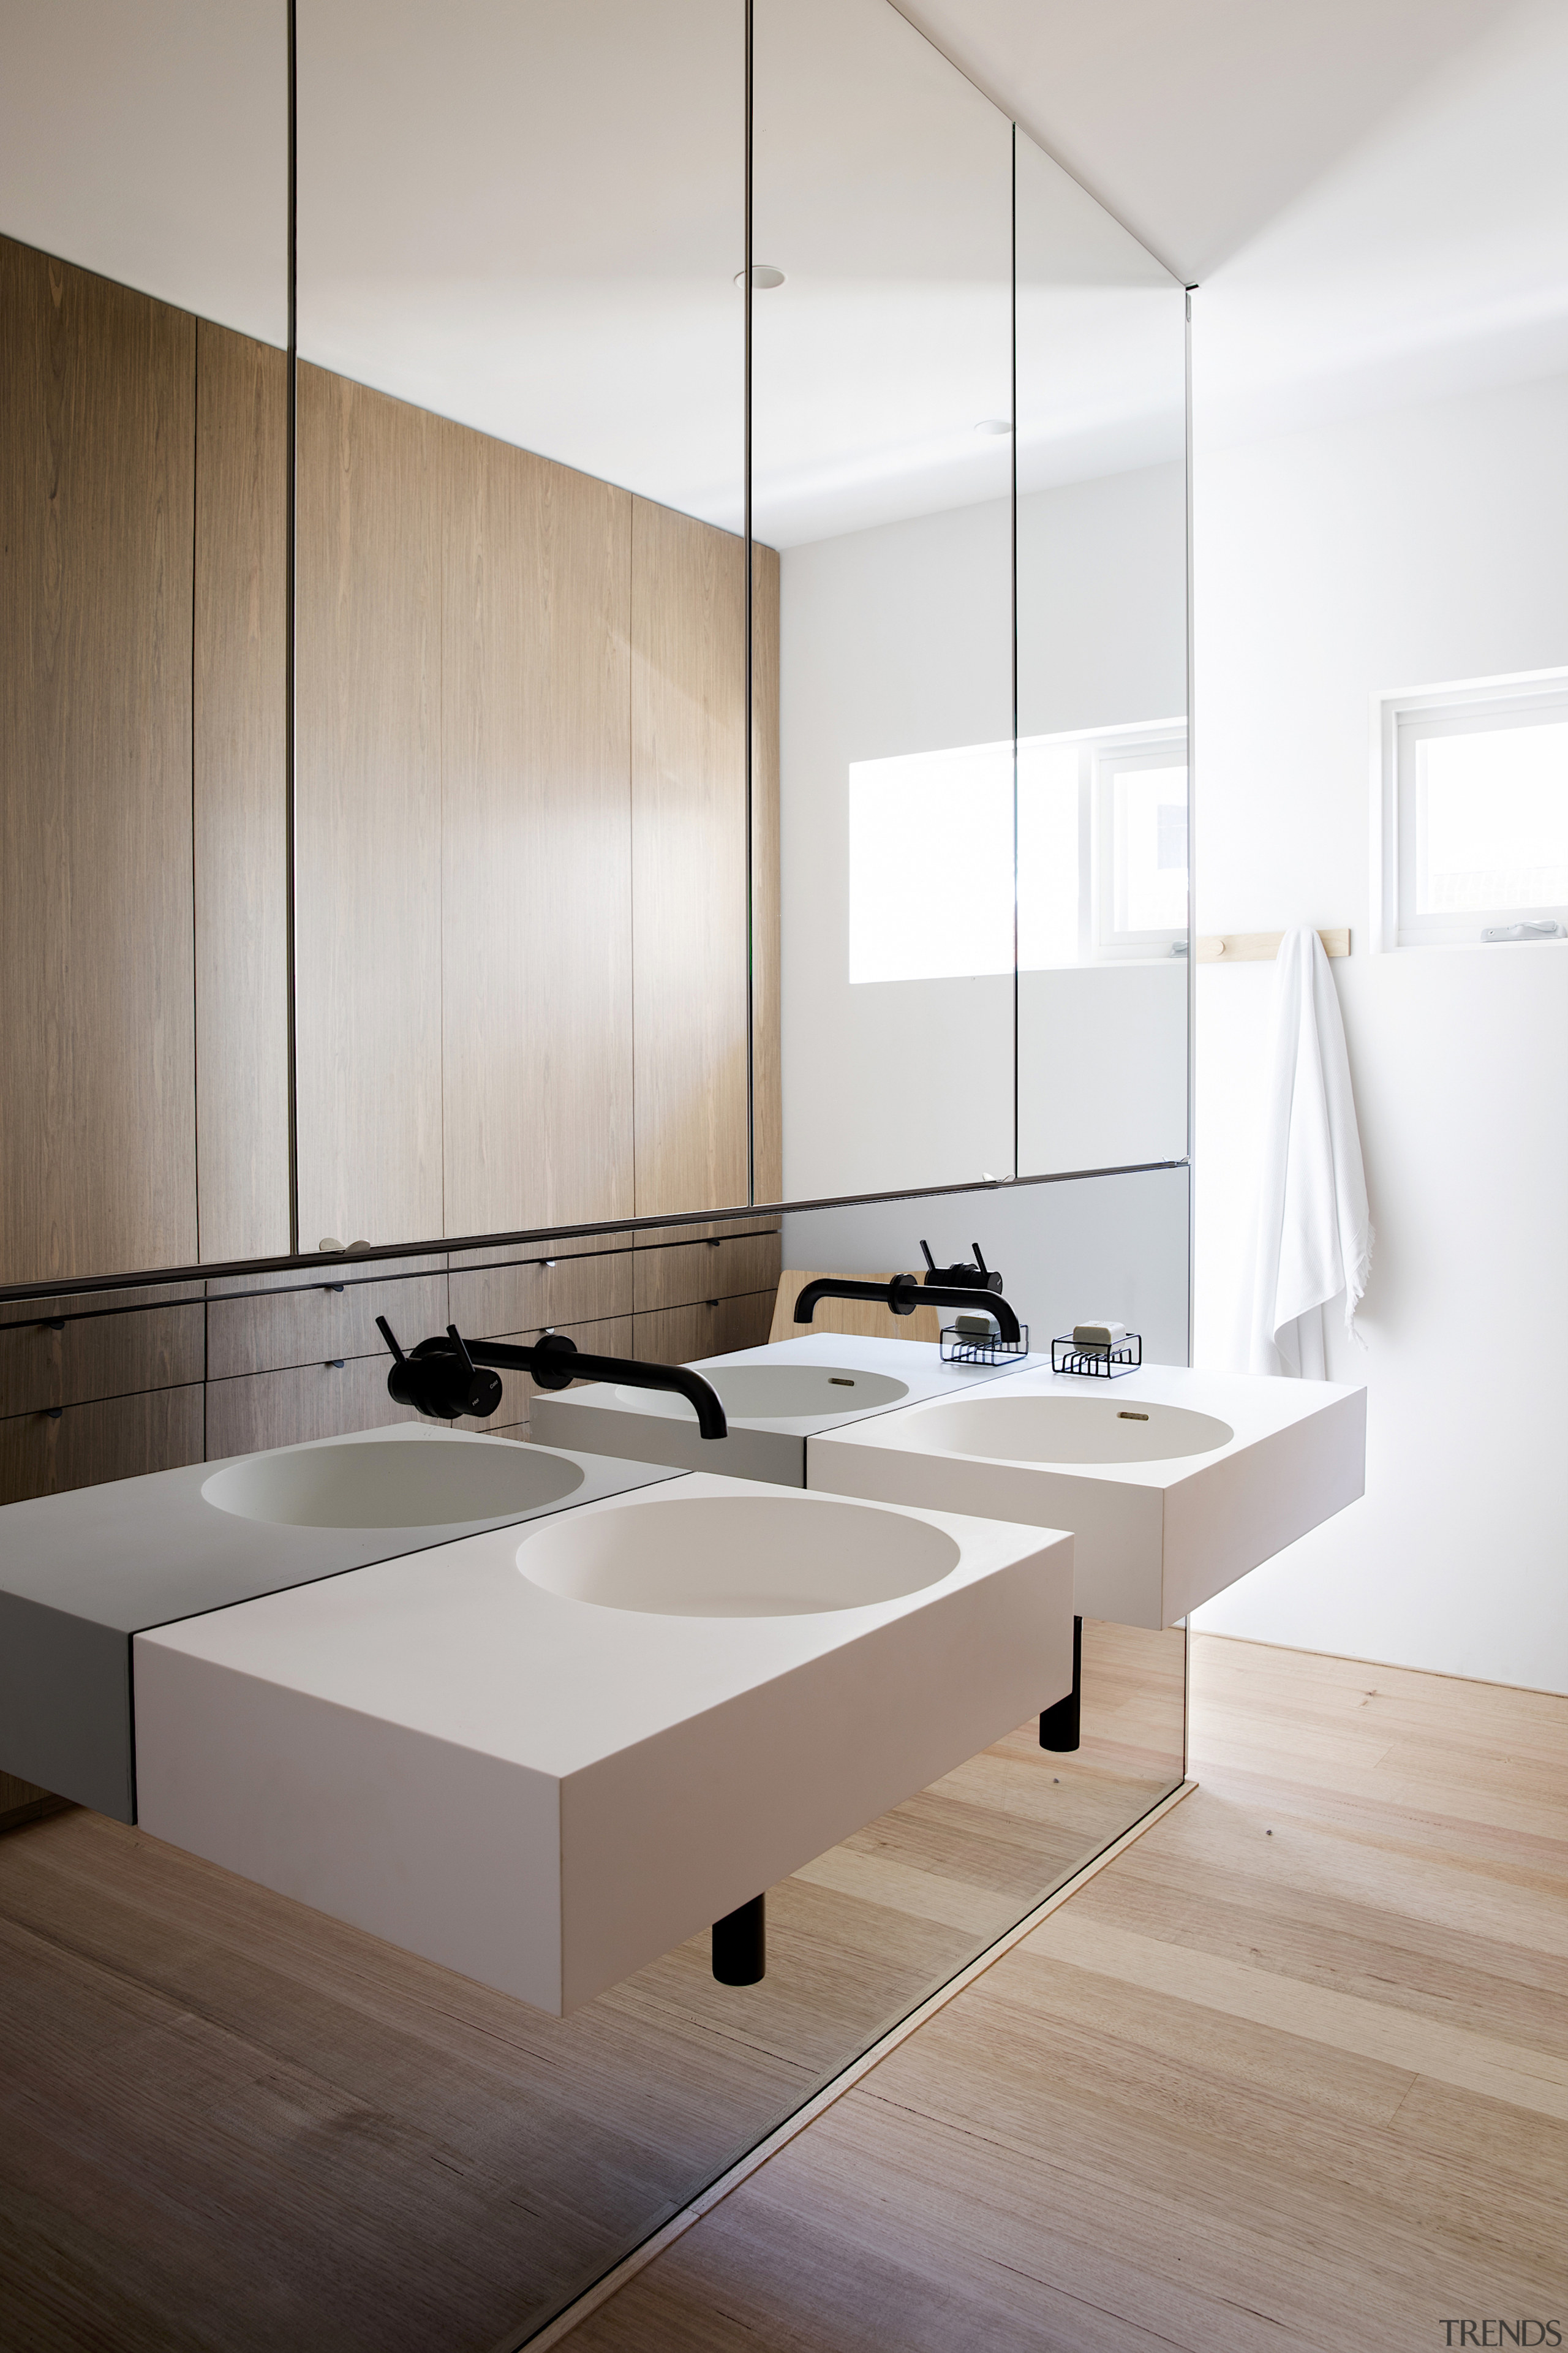 A mirror wall behind the two cantilevered sinks